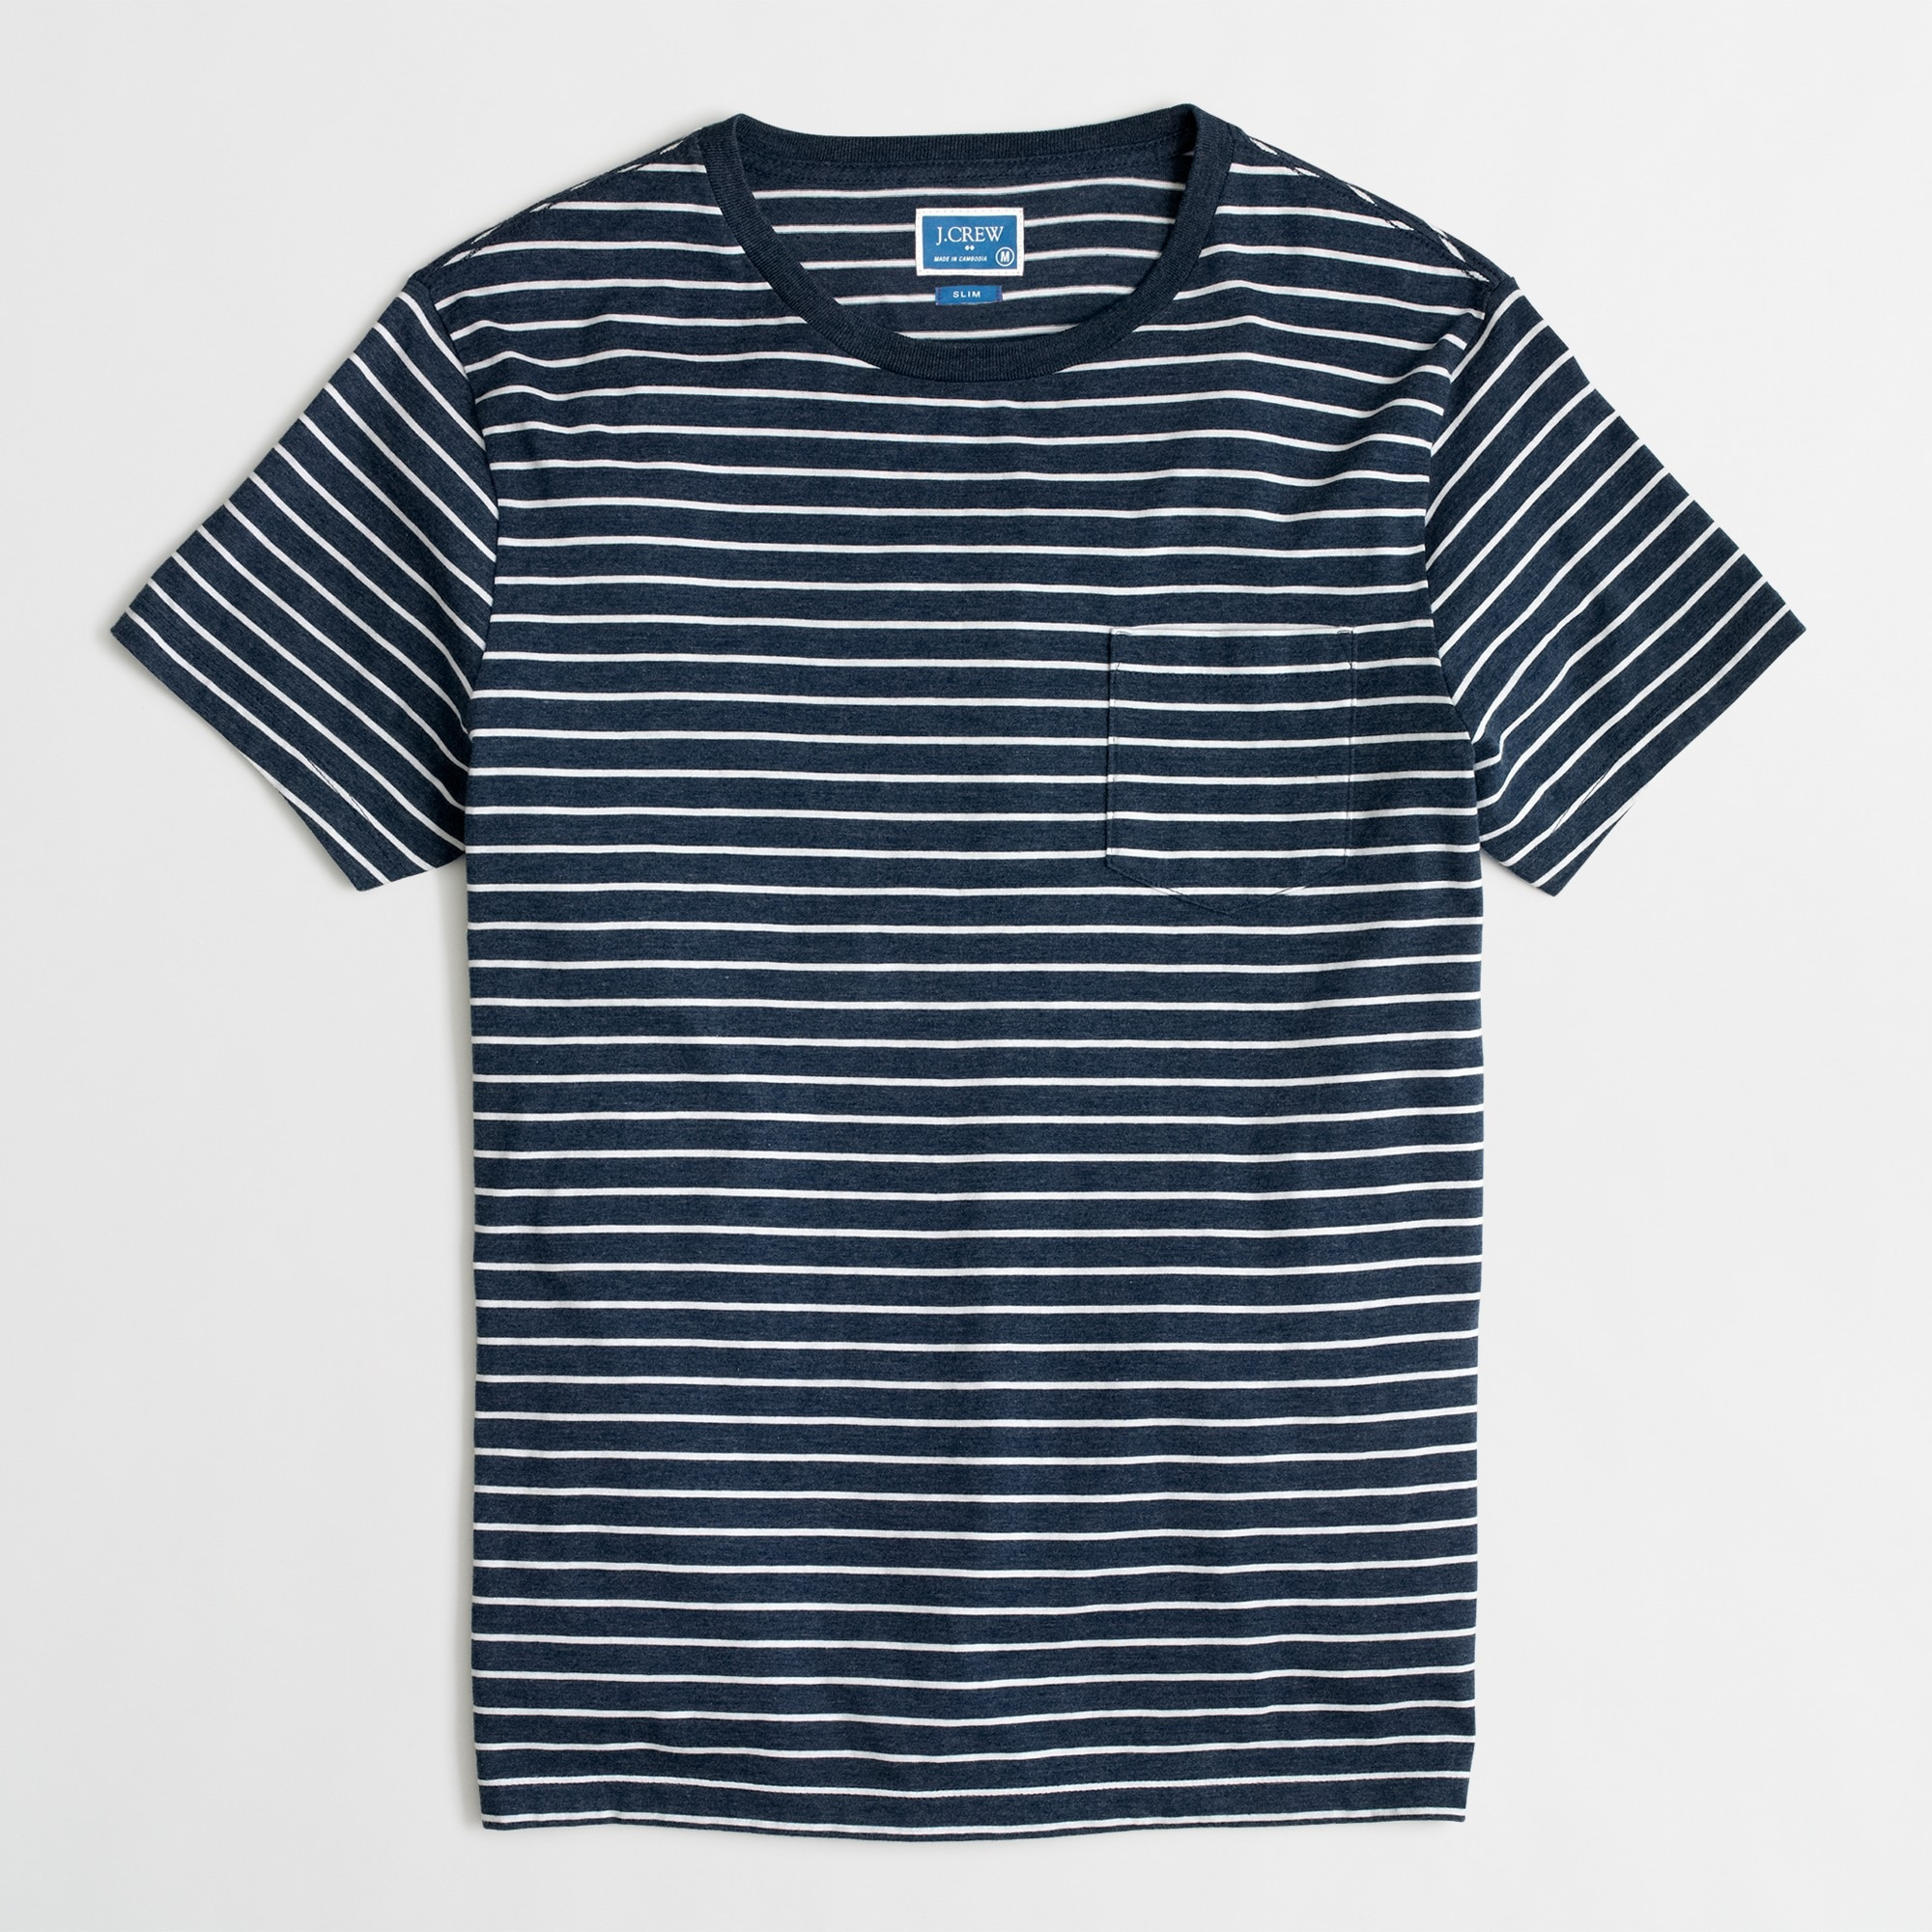 J.Crew Mercantile slim Broken-in striped pocket T-shirt